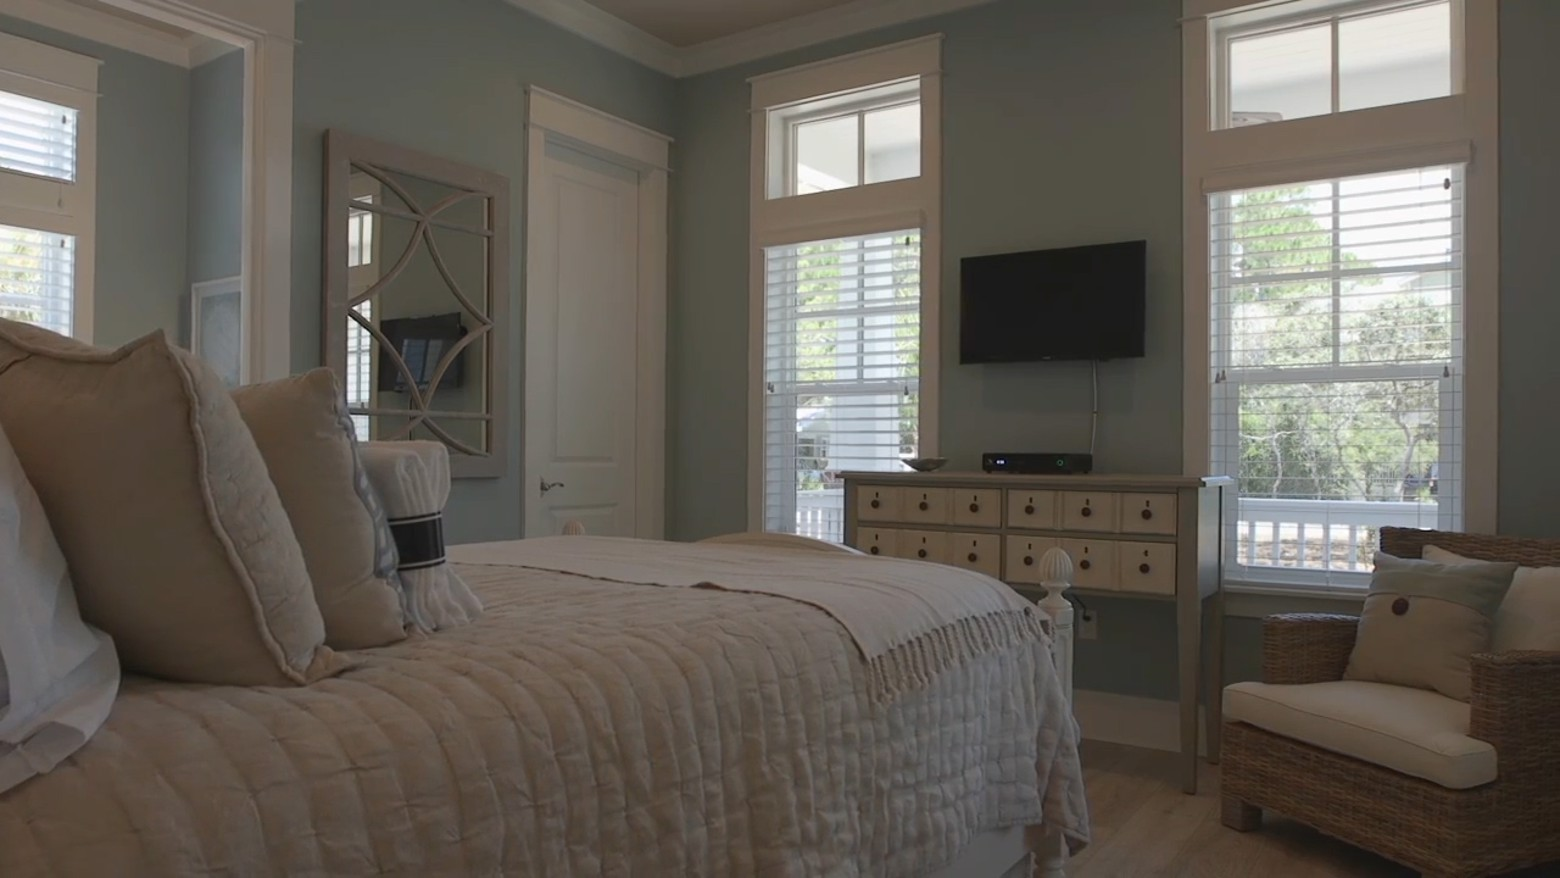 Southern-Sands-Seagrove-Beach-Vacation-Home.00_01_25_21.Still006.jpg image